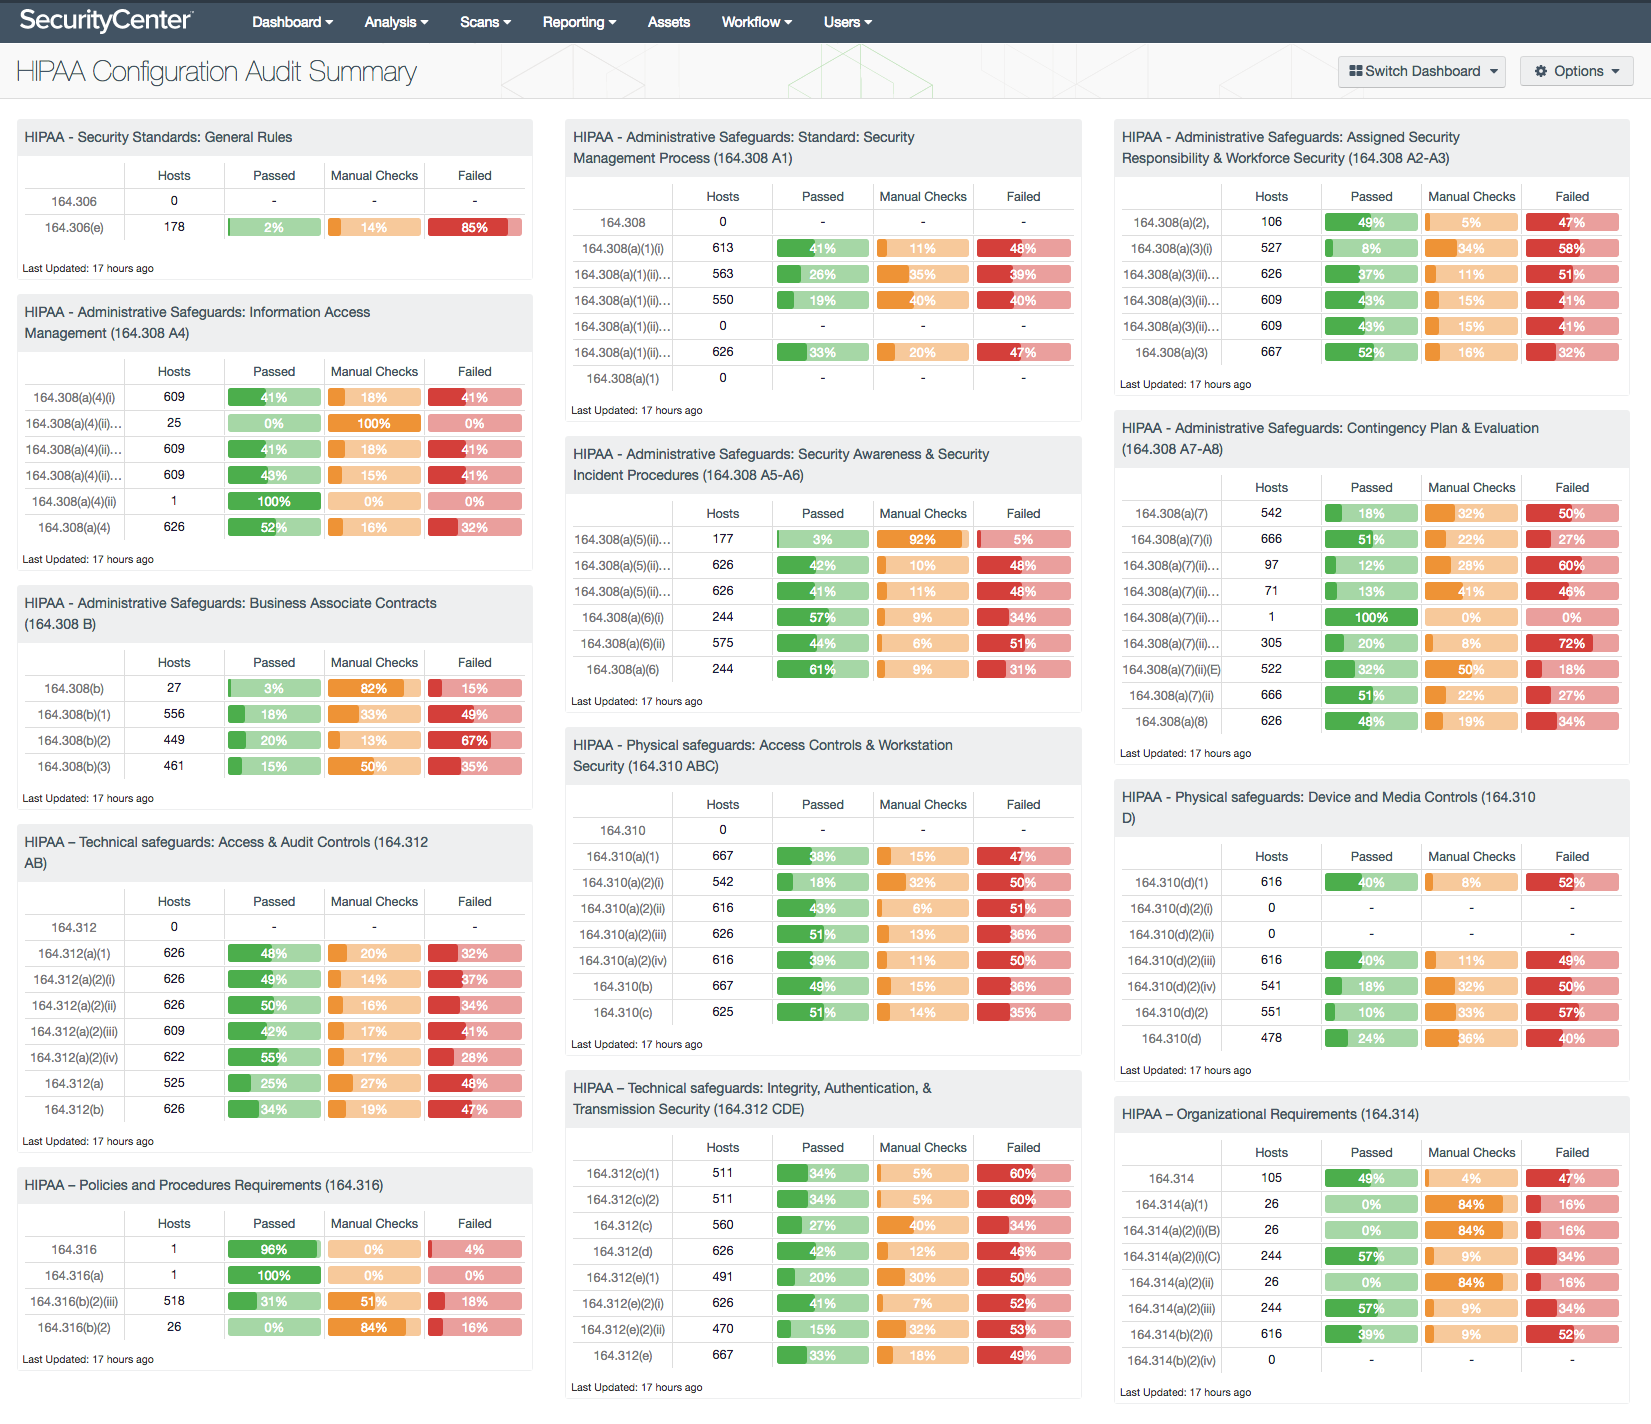 HIPAA Configuration Audit Summary Dashboard